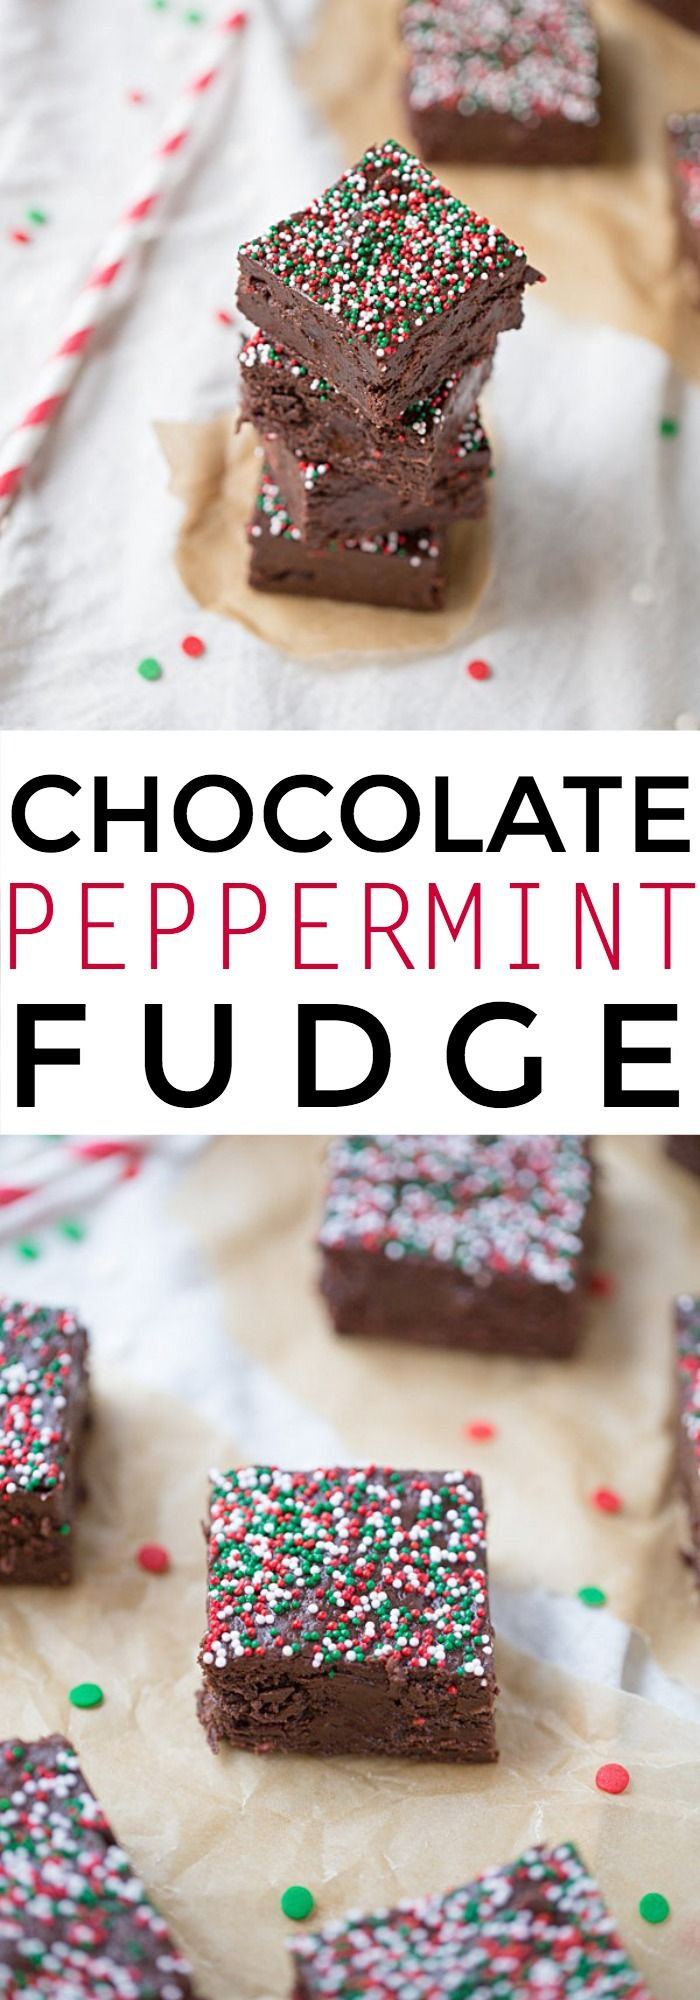 Chocolate Peppermint Fudge is a simple recipe that's perfect for Christmas! | This Gal Cooks